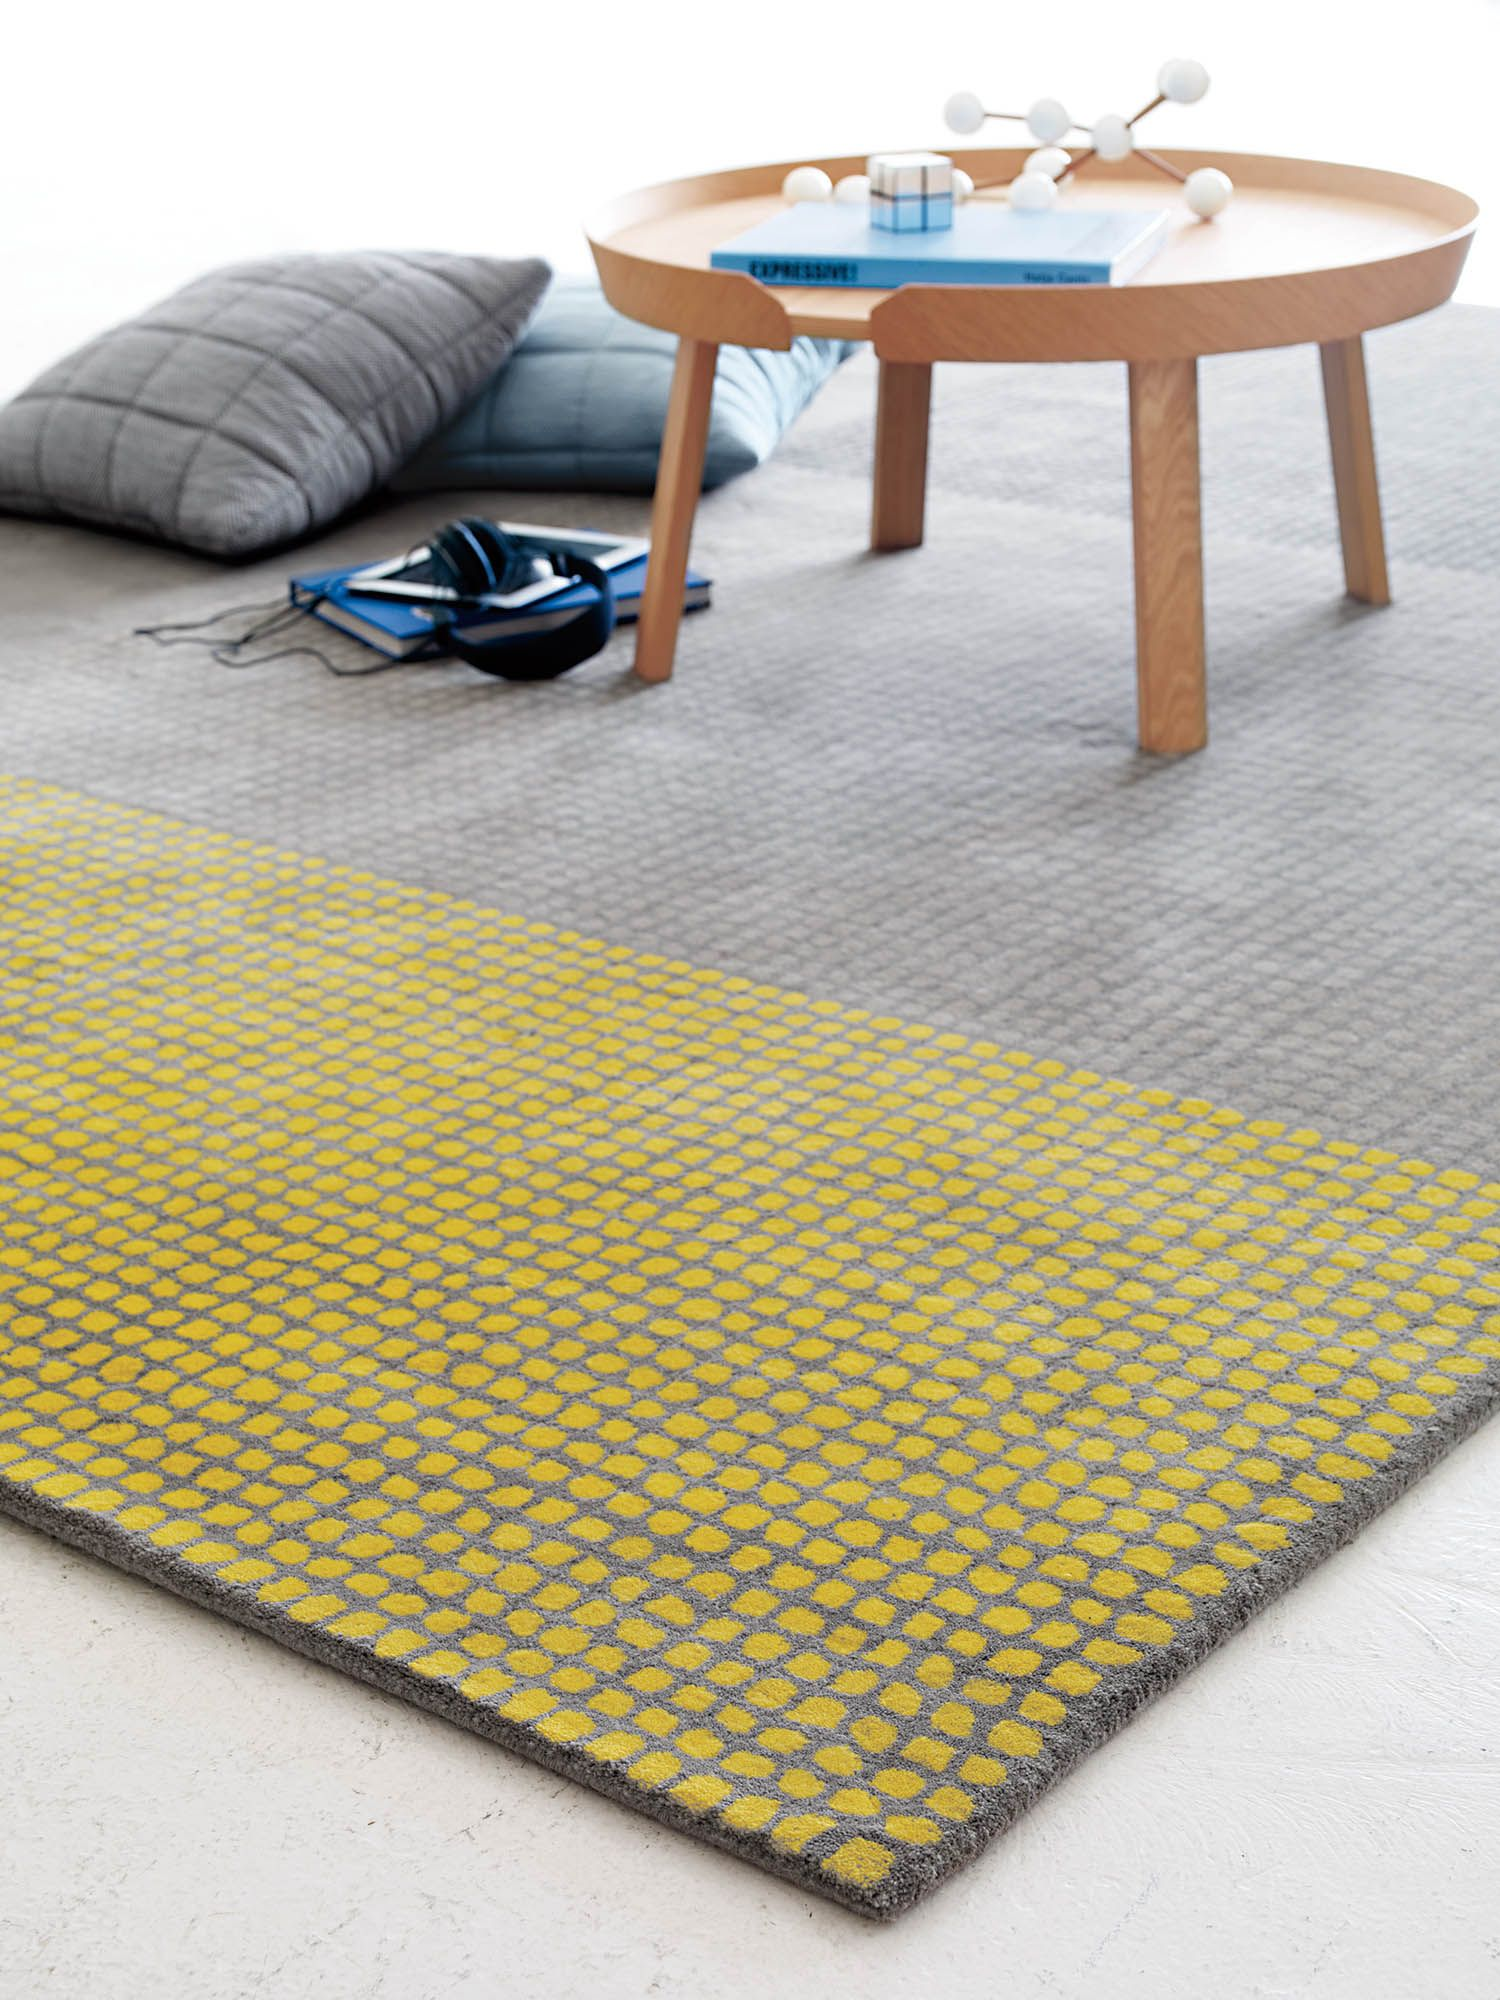 Stippen Rug Design Within Reach Traditional Interior Design Rug Design Cool Rugs